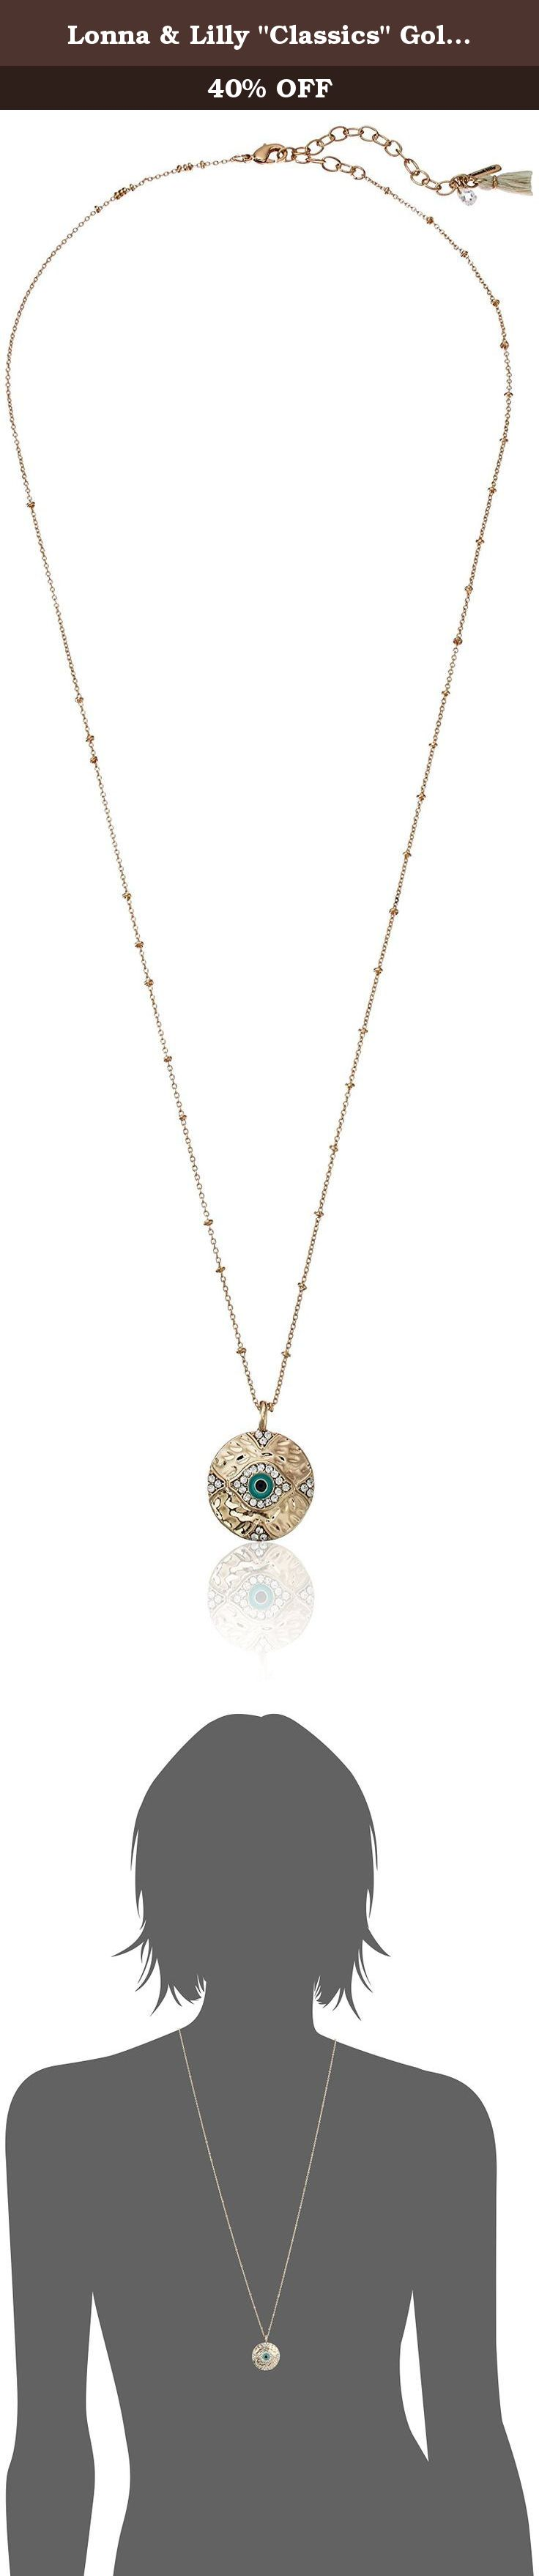 """Lonna & Lilly """"Classics"""" Gold-Tone/Turquoise Evil Eye Pendant Necklace, 28"""" + 3"""" Extender. Made in Vietnam. Gold-Tone/Turq Evil Eye Pendant. Imported."""